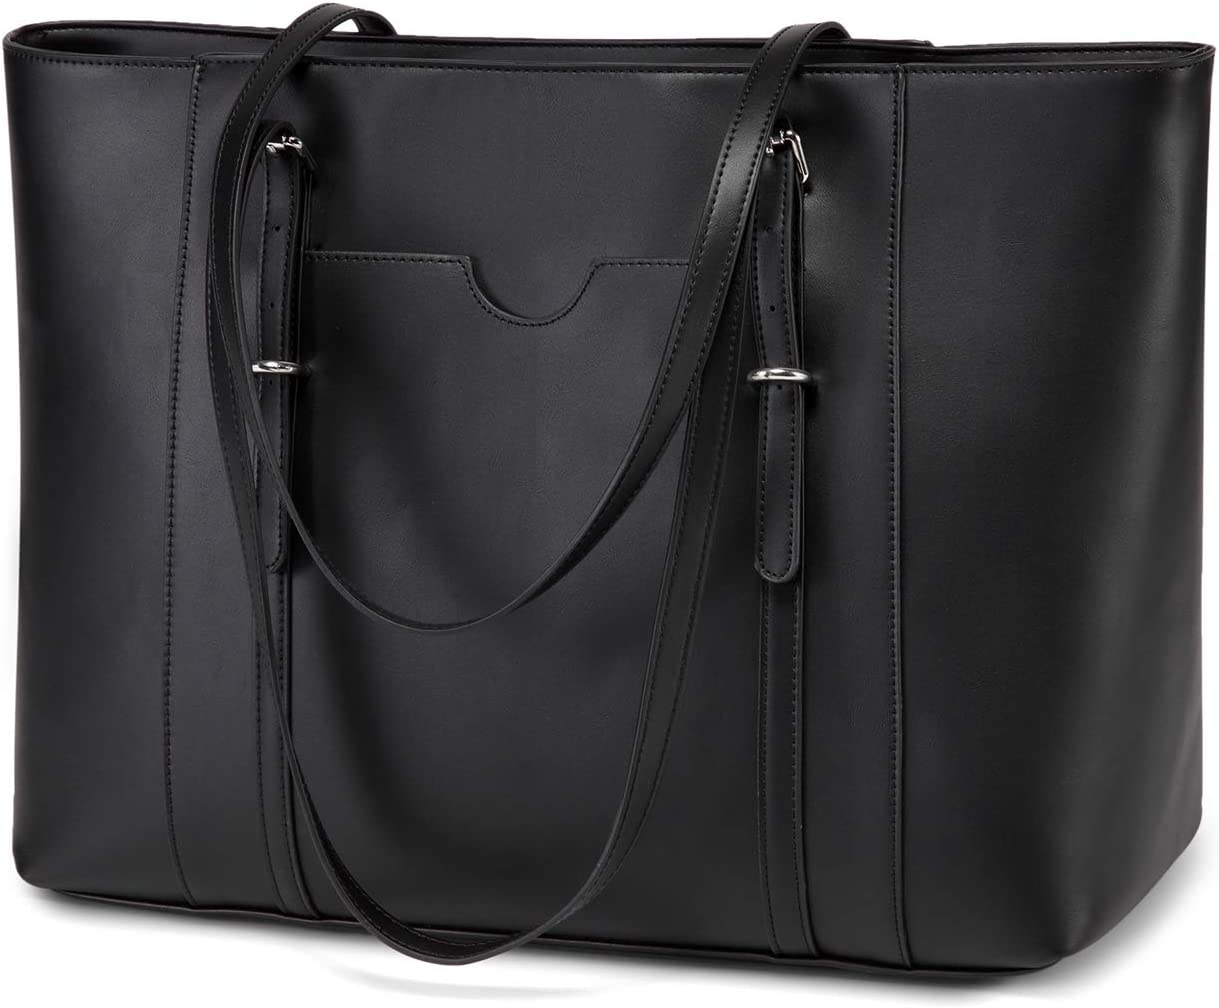 Laptop Tote Bag for Women,Vaschy PU Leather Water Resistant Travel,Work,Teacher Tote Bag Fits 15.6 inch Laptop Black